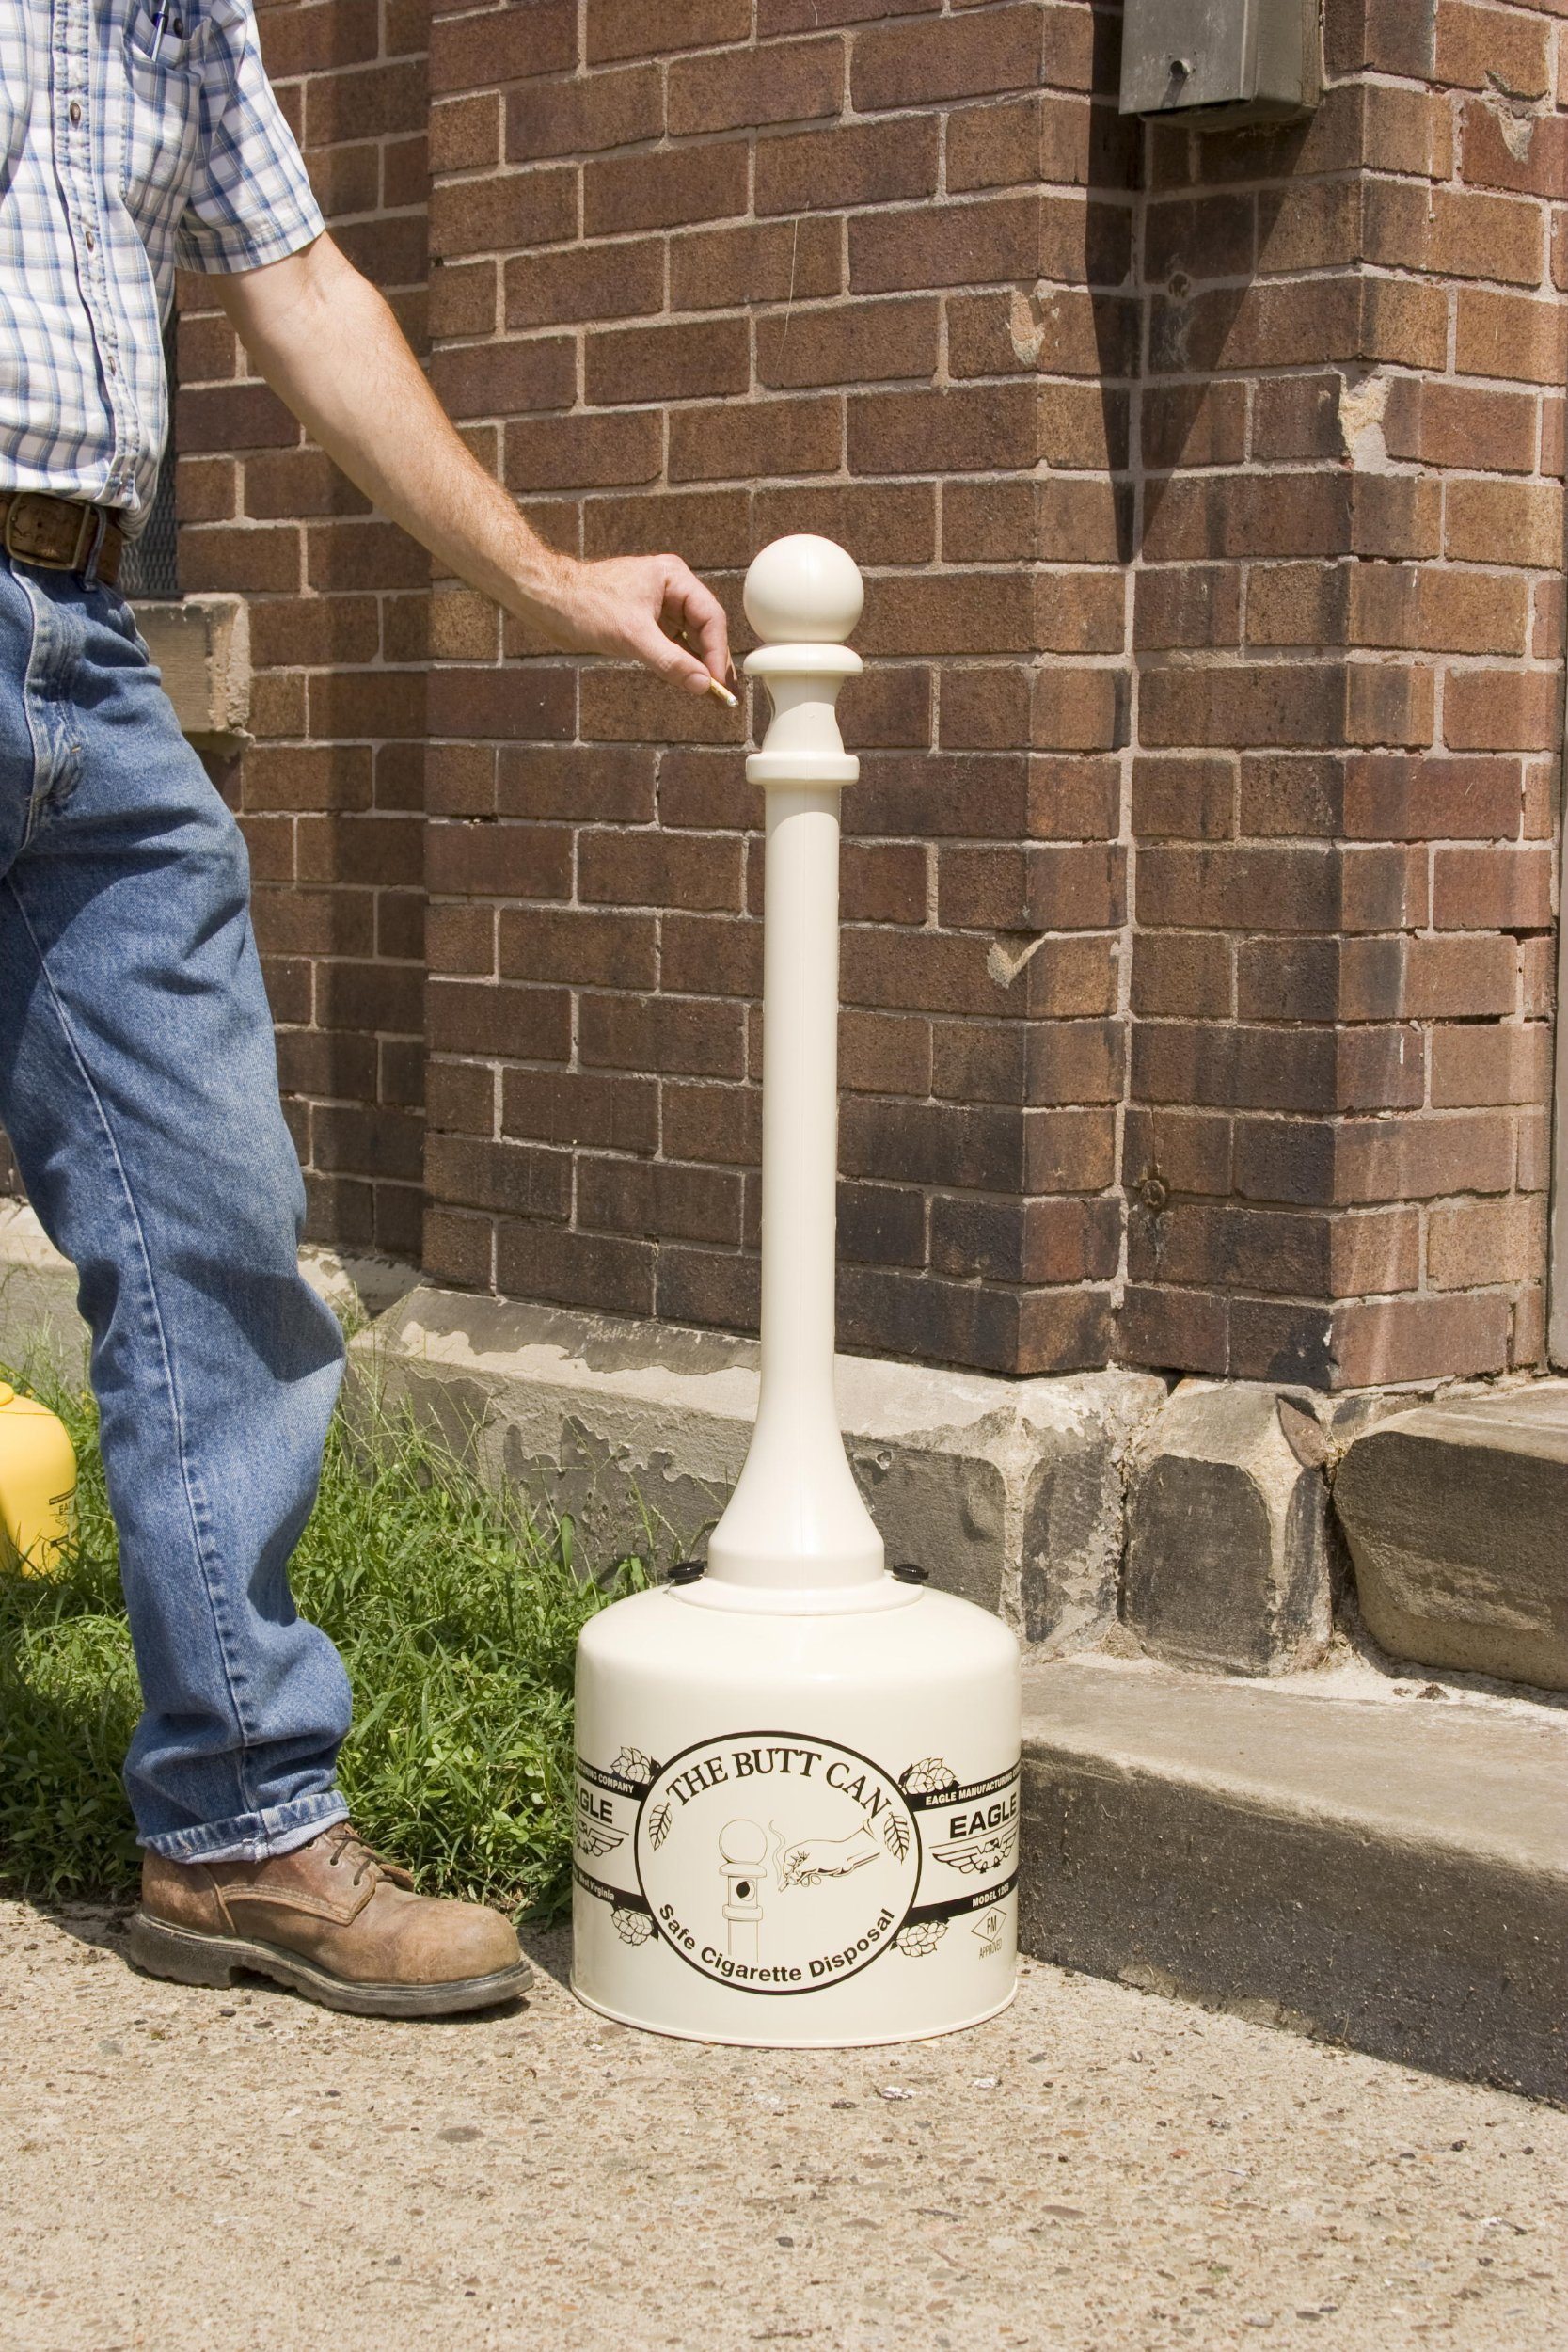 Eagle 1205BEI Galvanized Steel Cigarette Butt Receptacle, 5 gallon Capacity, 40'' Height, 12'' Diameter, Beige